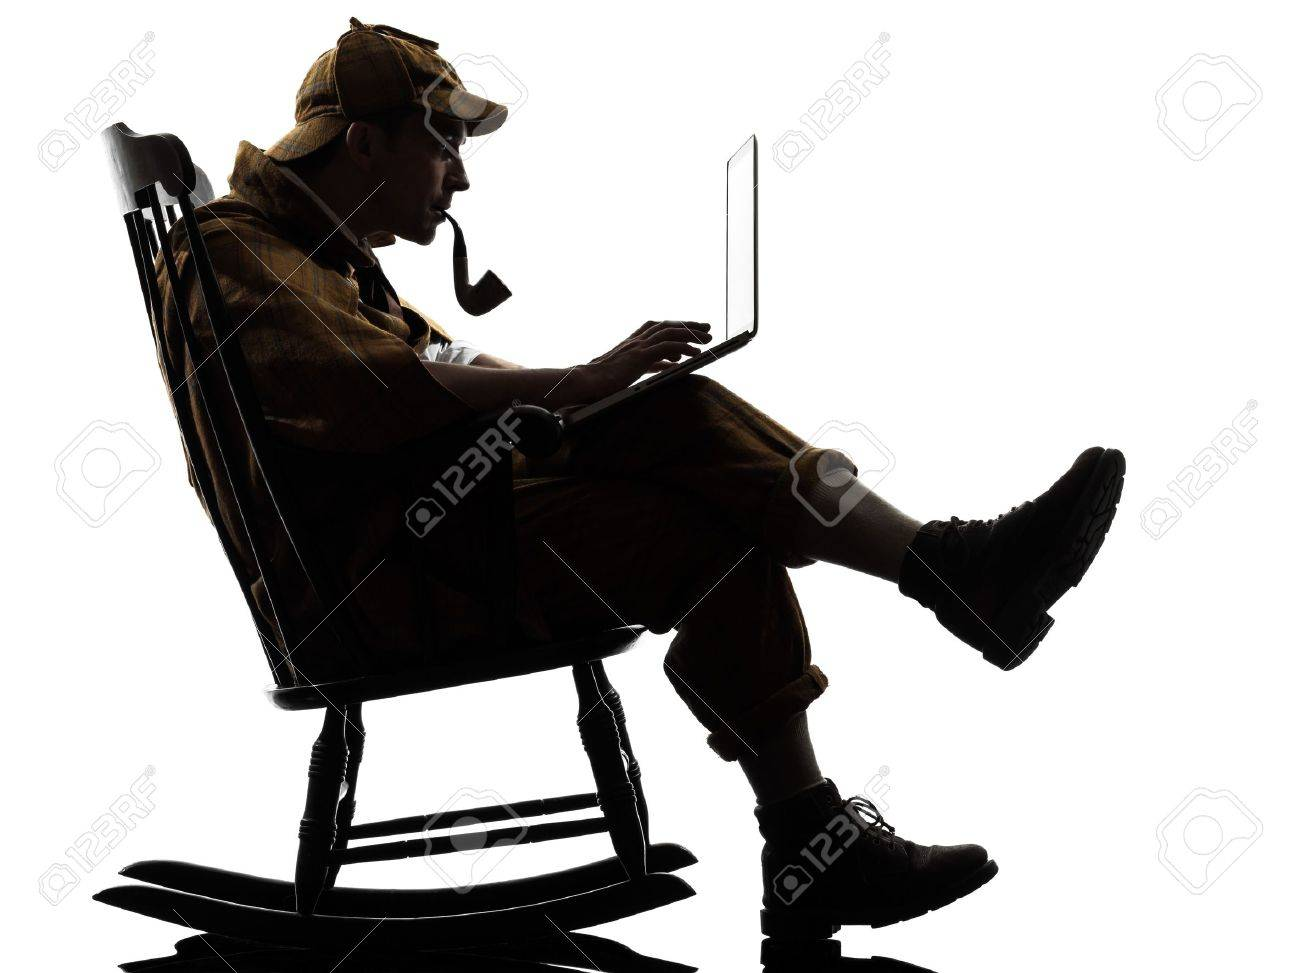 Sherlock Holmes With Computer Laptop Silhouette Sitting In Rocking